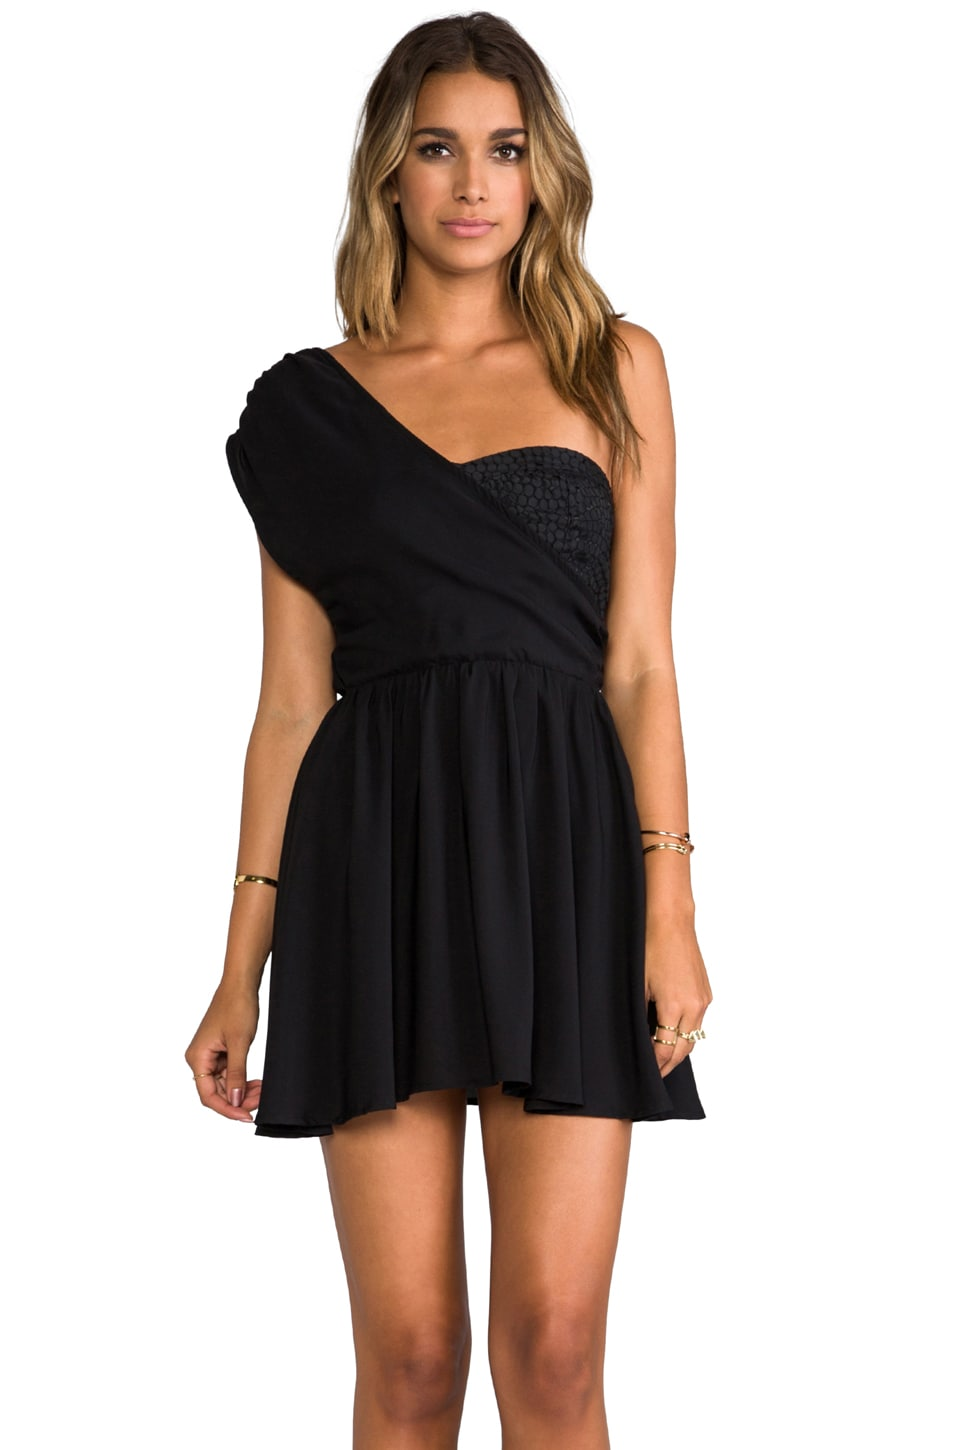 6 SHORE ROAD Wander Lust One Shoulder Mini Dress in Midnight